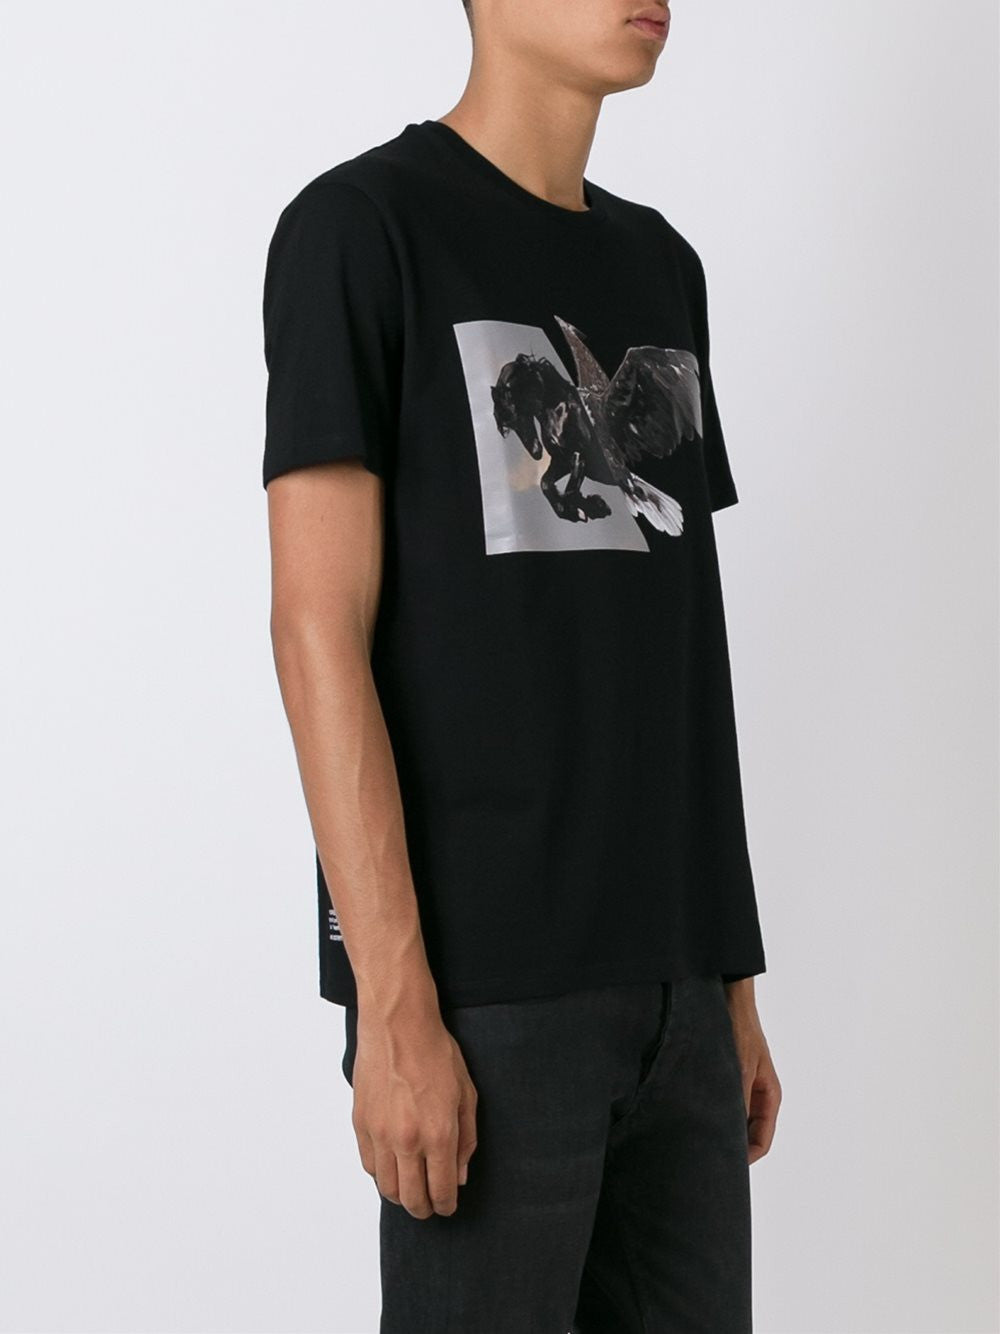 Collage Graphic Tee | BJT171I-B545S